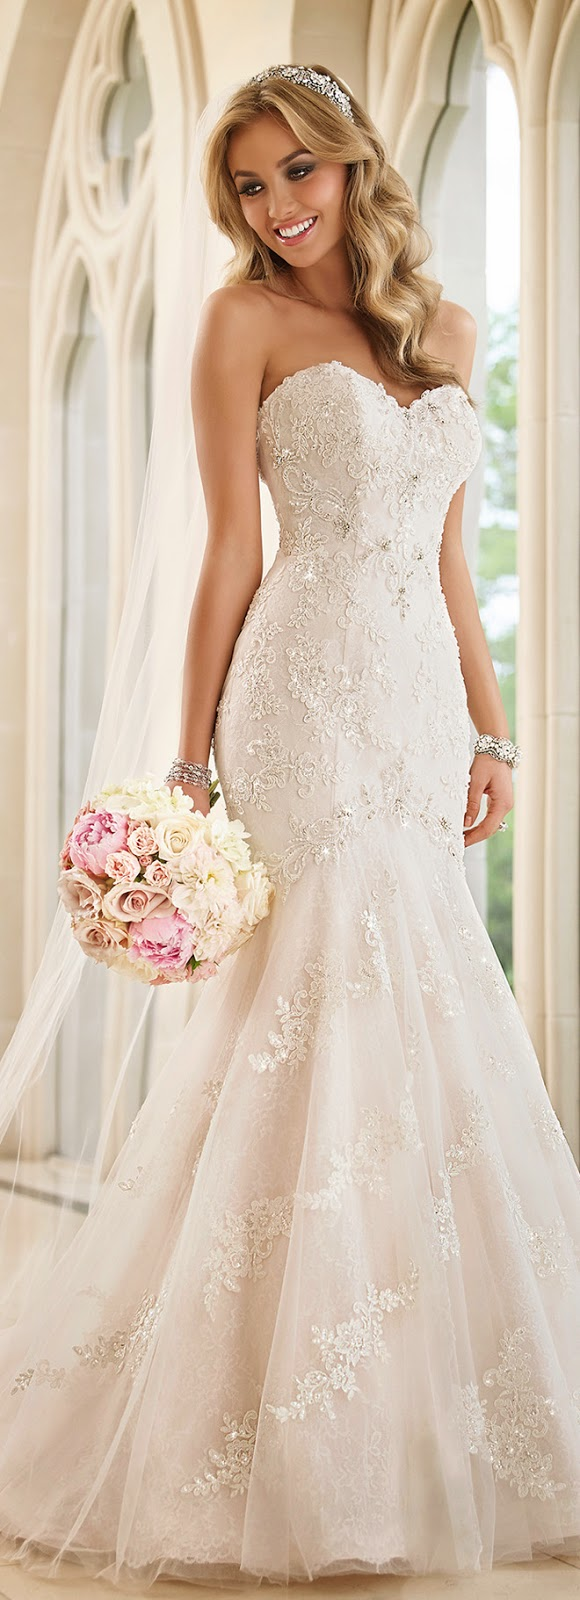 Stella York Fall 2015 Bridal Collection : Special Preview